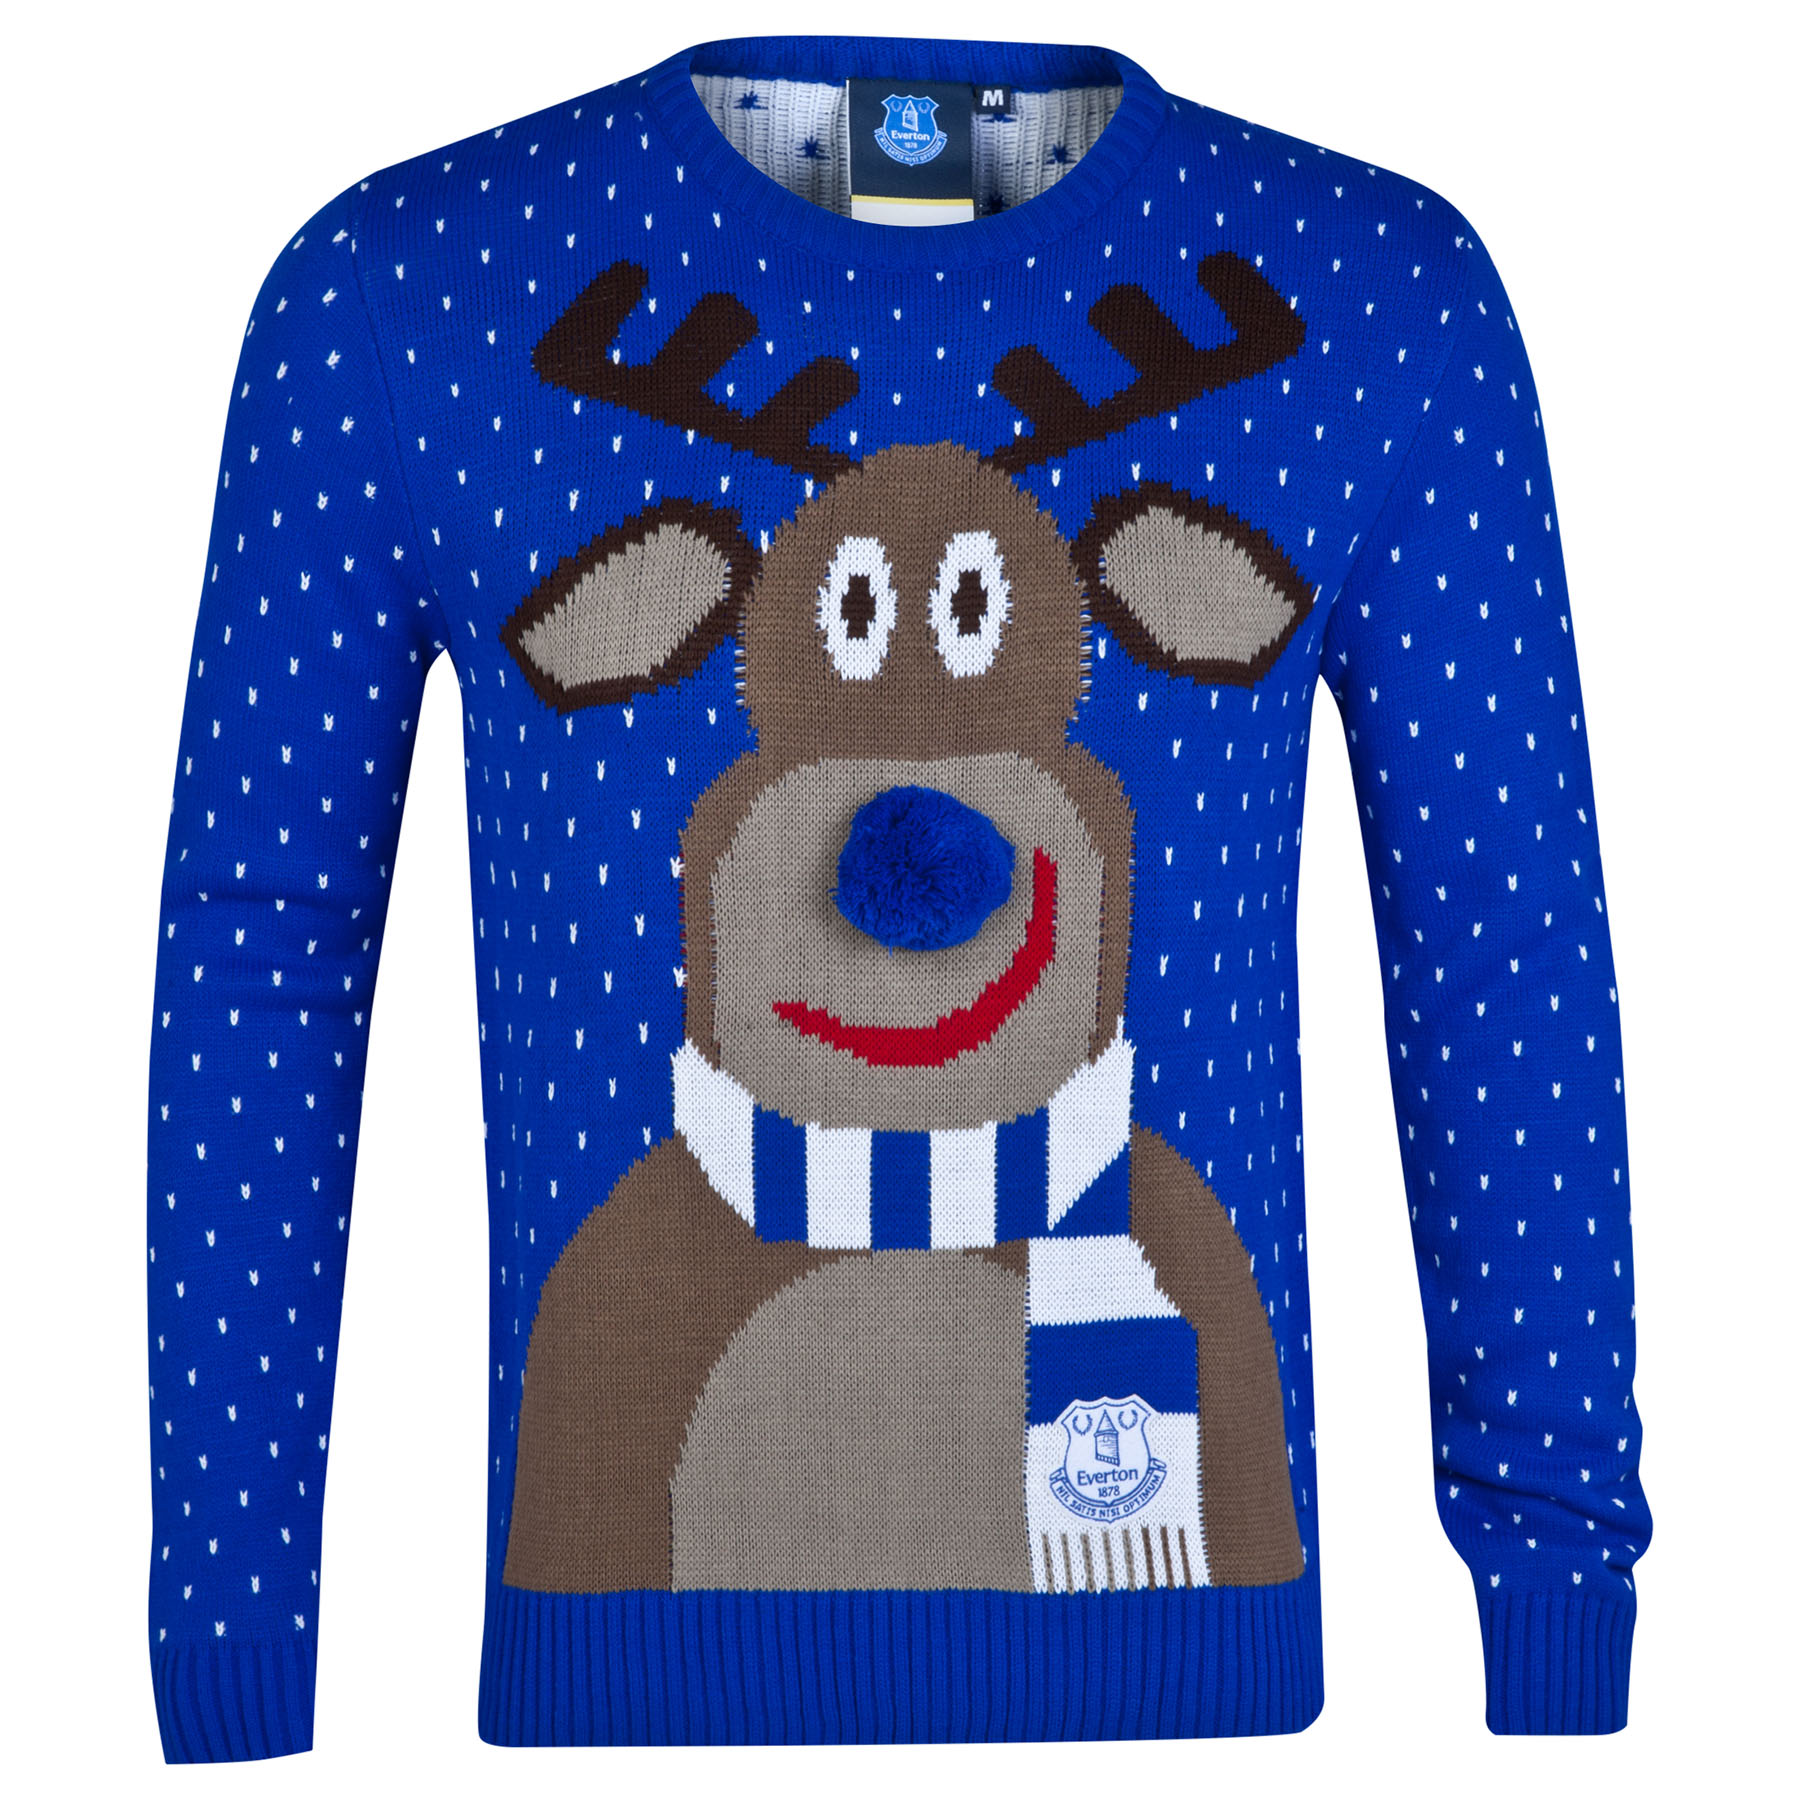 Everton Christmas Jumper - Blue - Adult